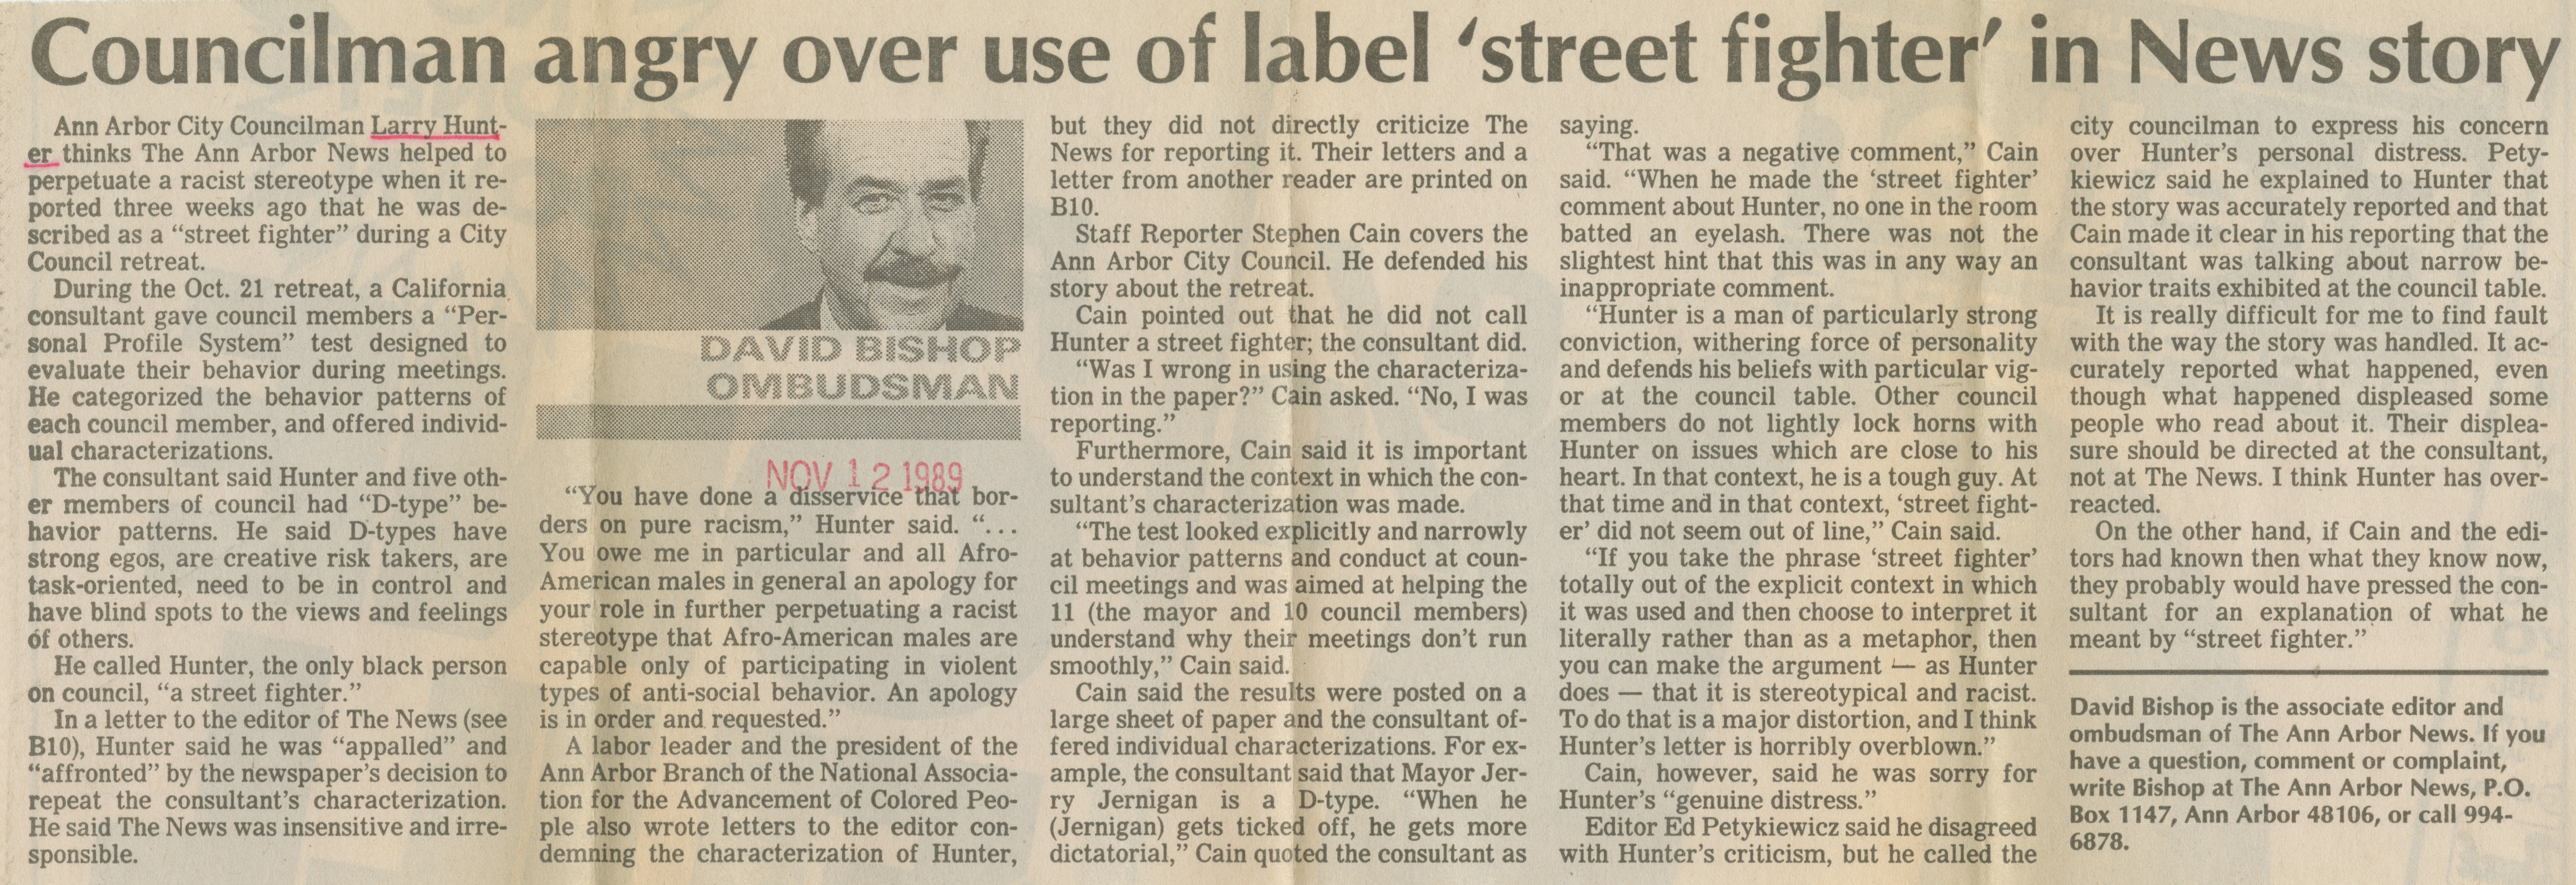 Councilman angry over use of label 'street fighter' in News story image